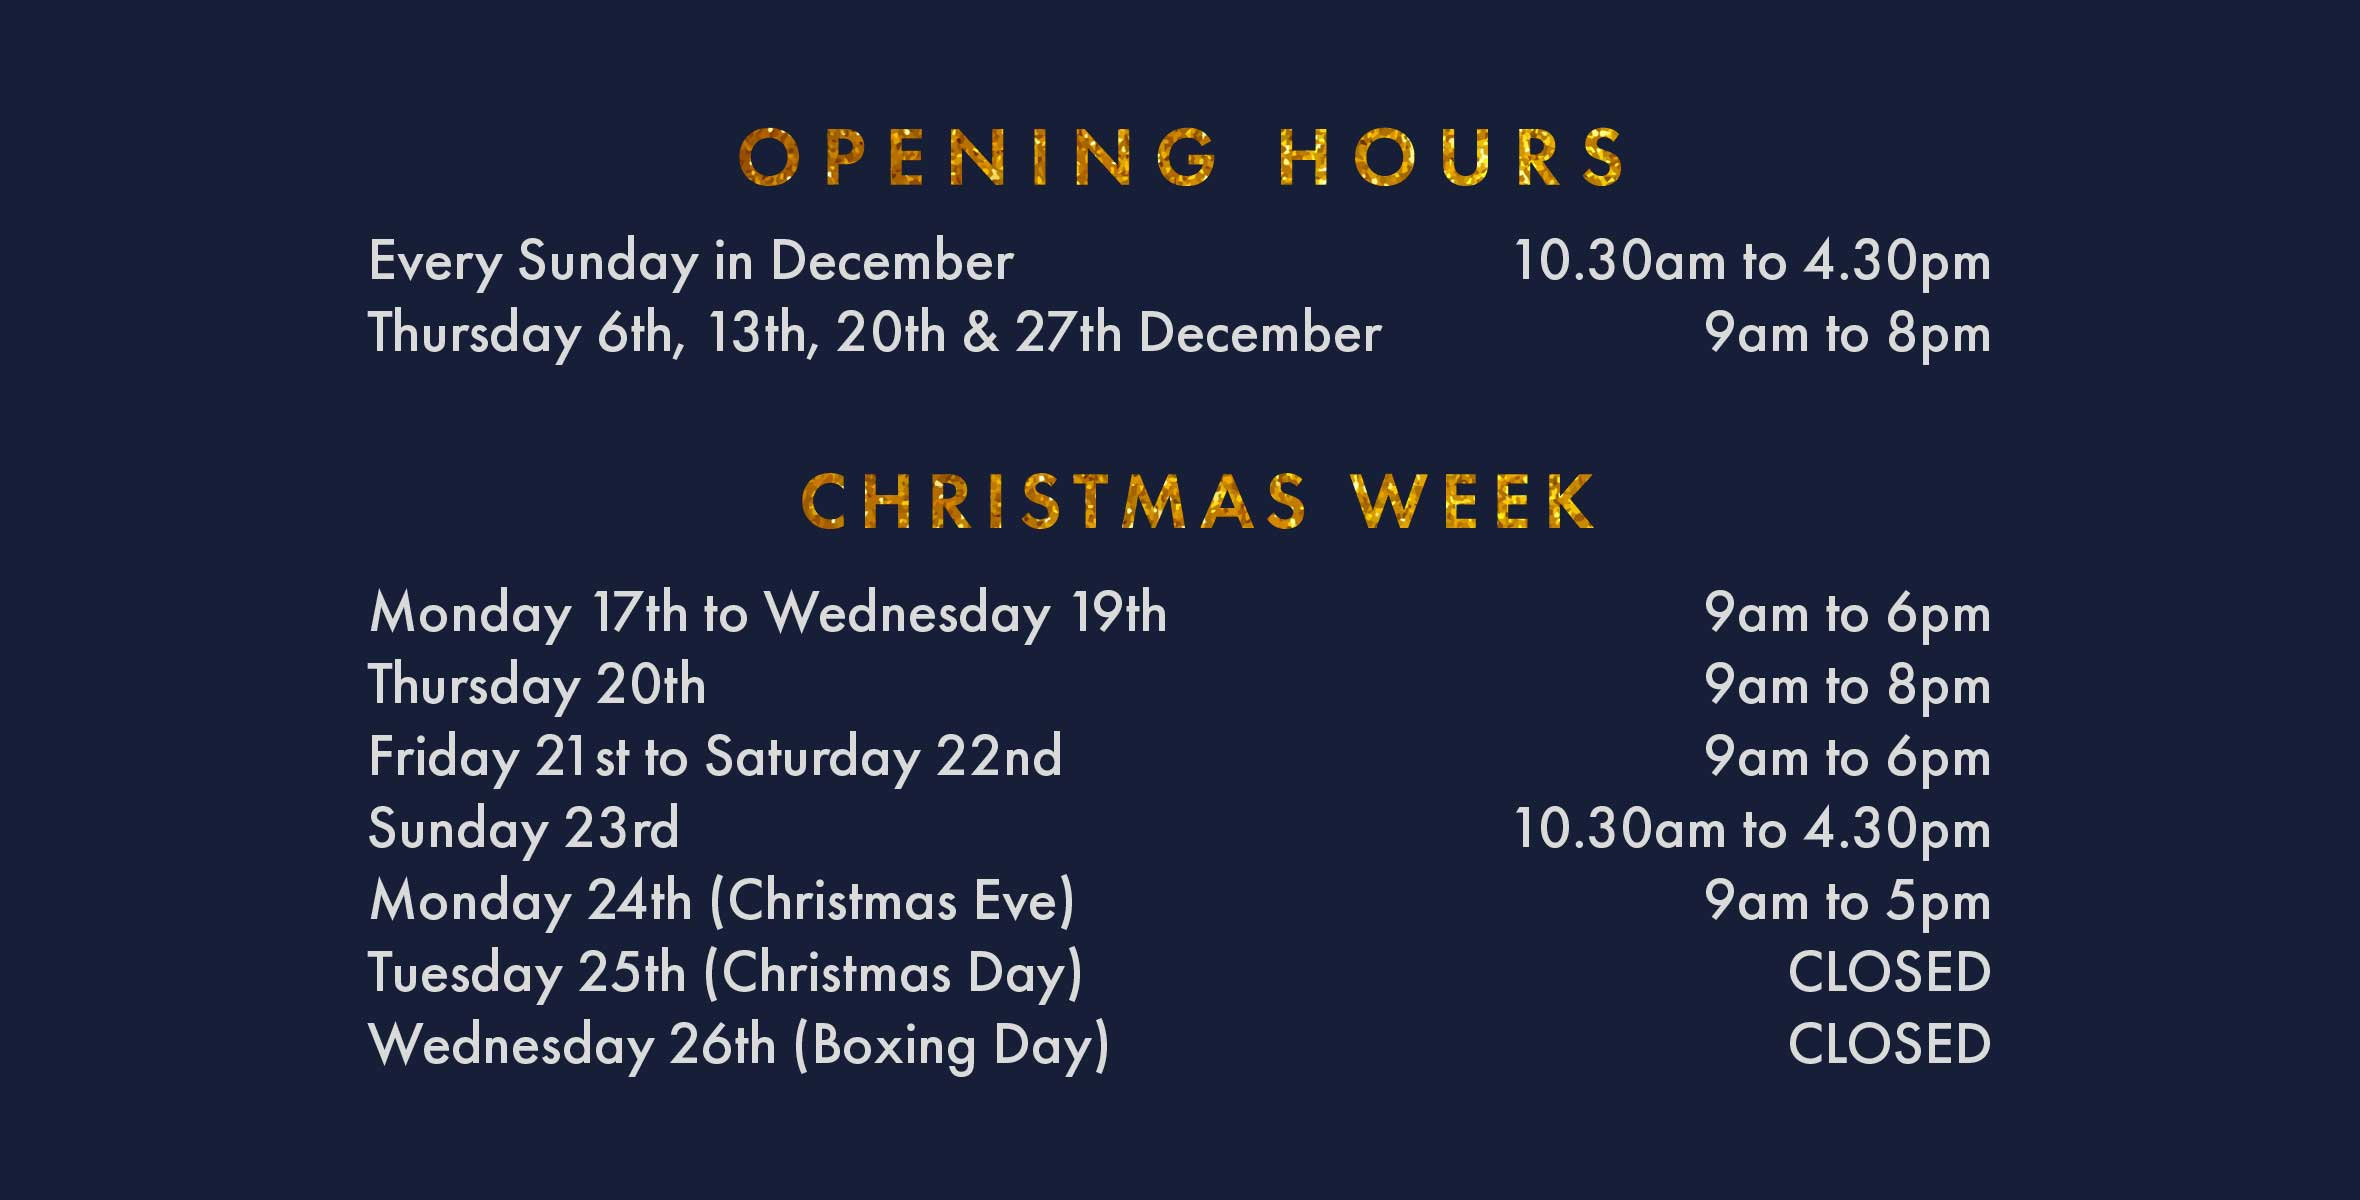 Opening Hours at Christmas